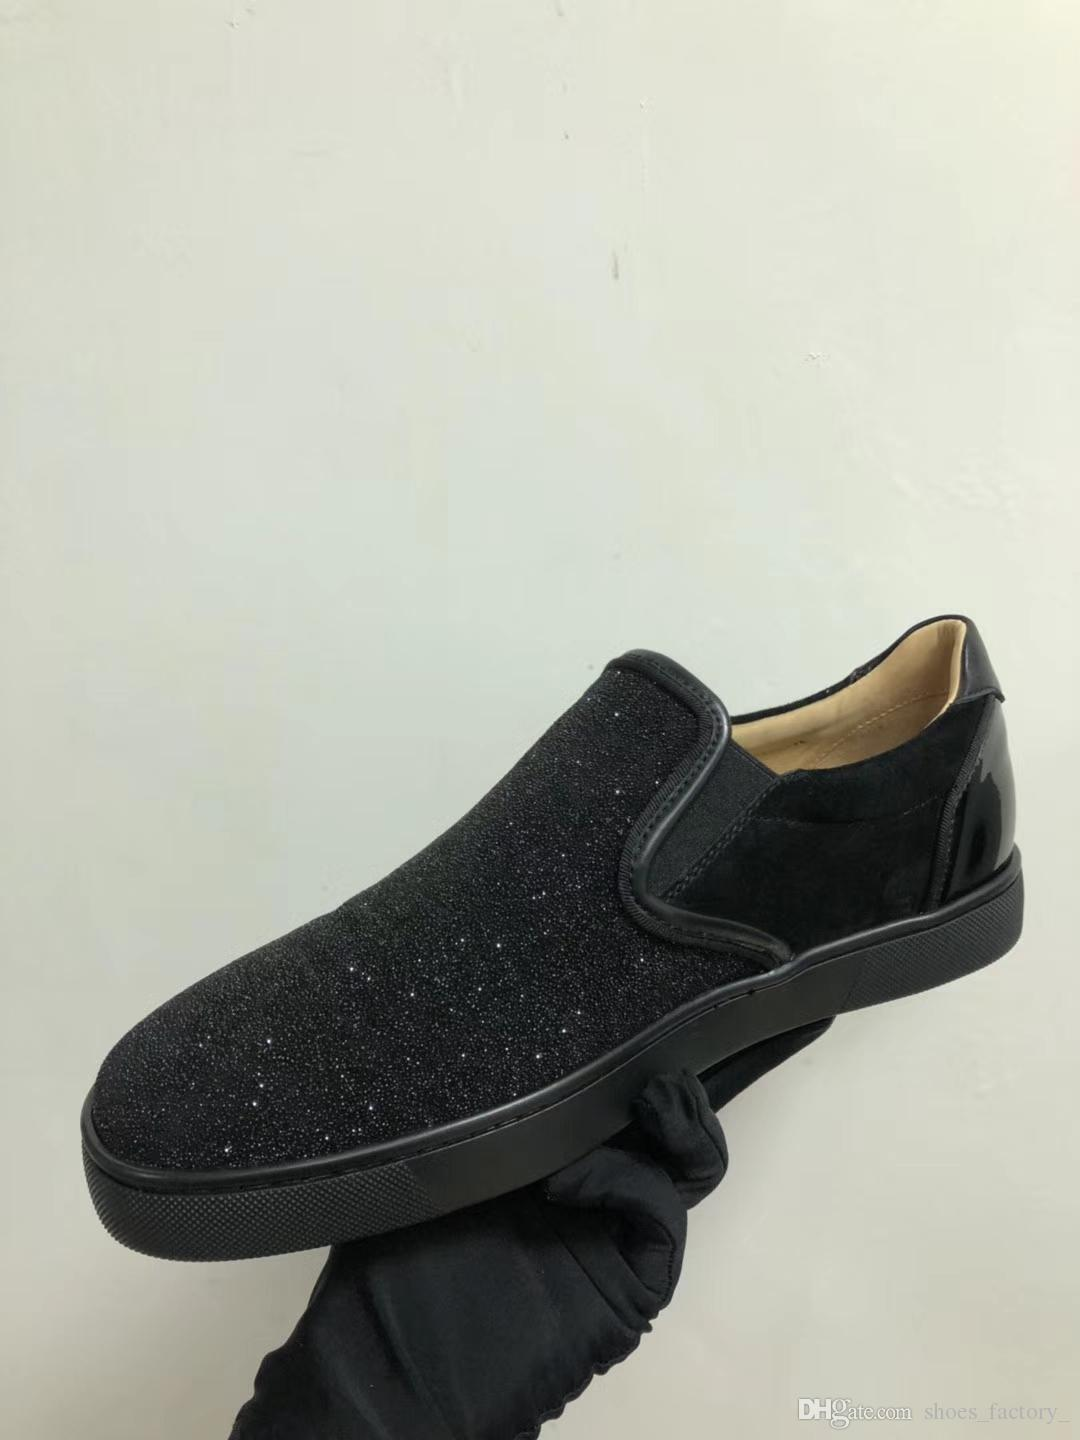 1351690bf00 2018 Top Black Patent Loafers Shoes For Men